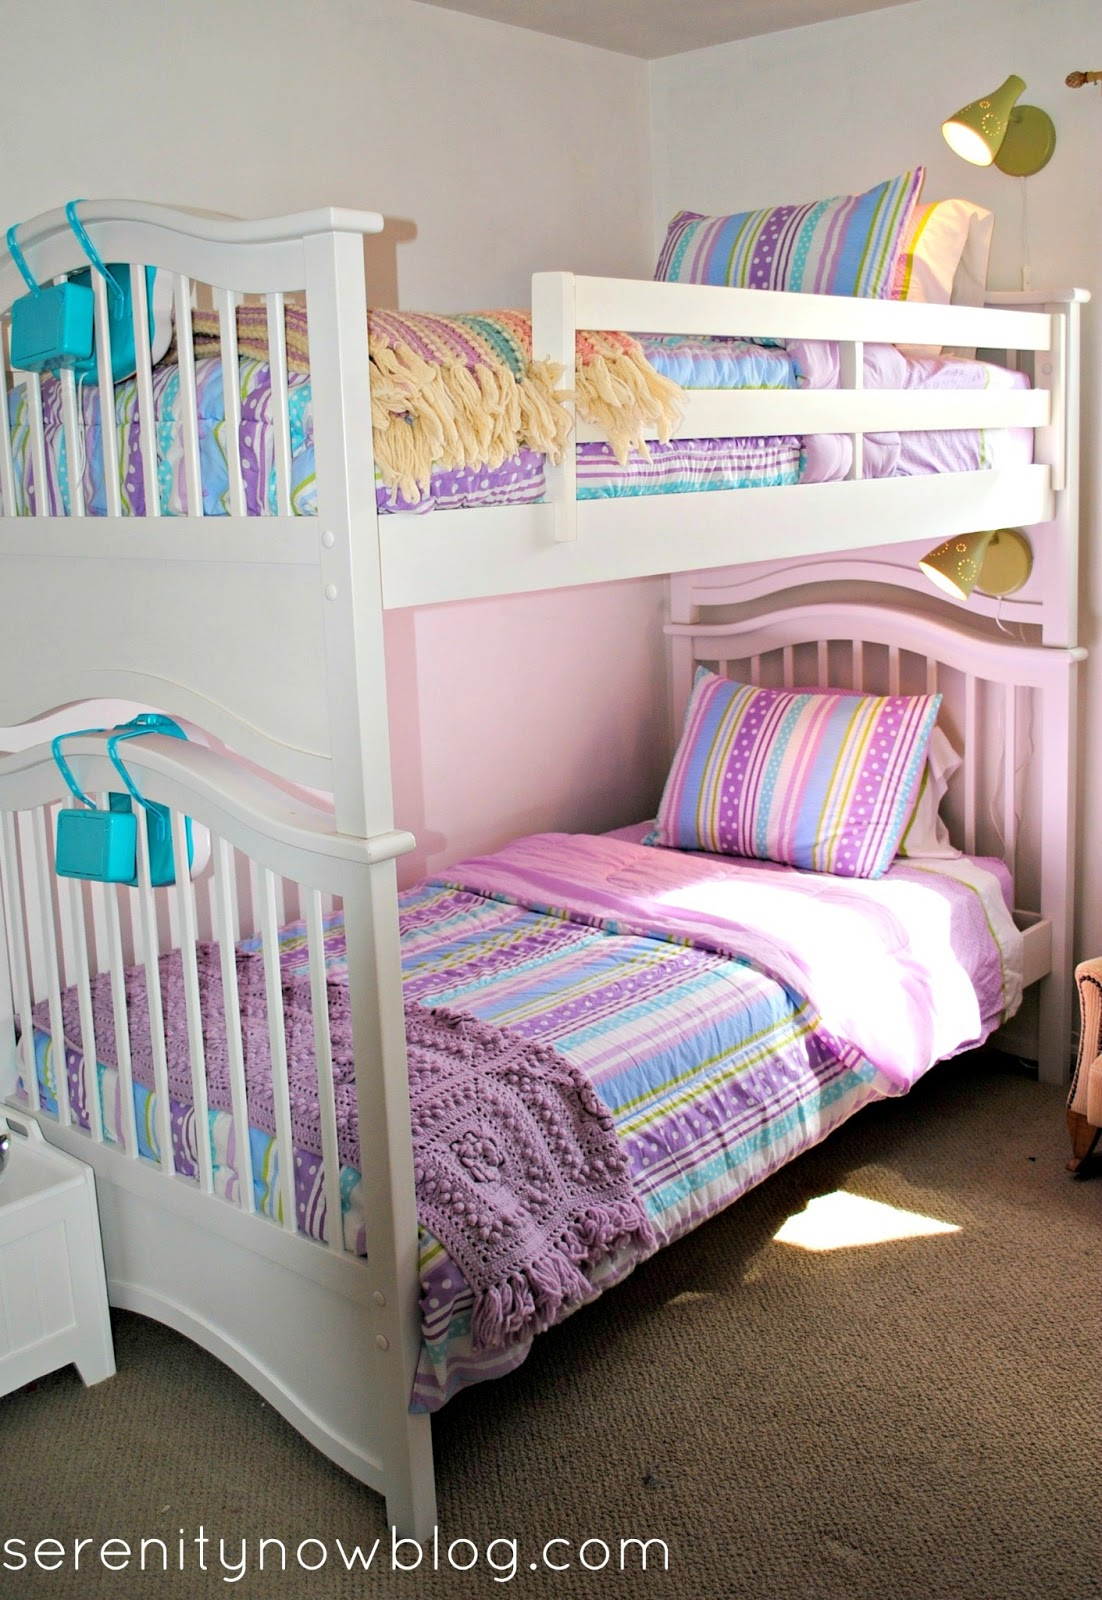 Serenity Now: Styling the Girls' Bunk Beds